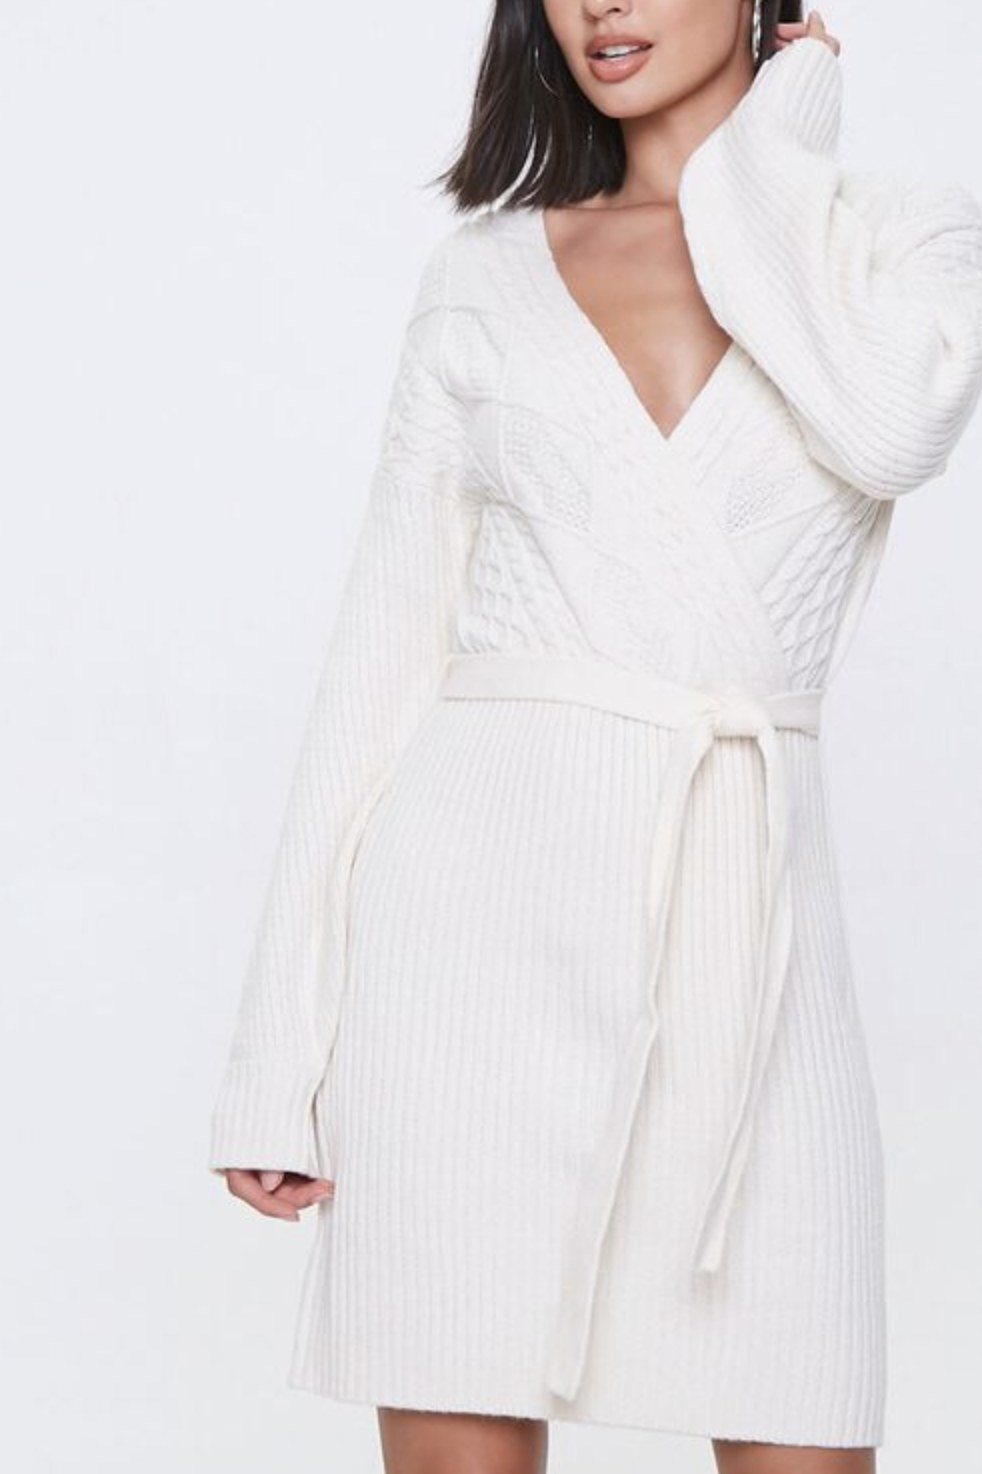 Model is wearing a white cable knit wrap dress